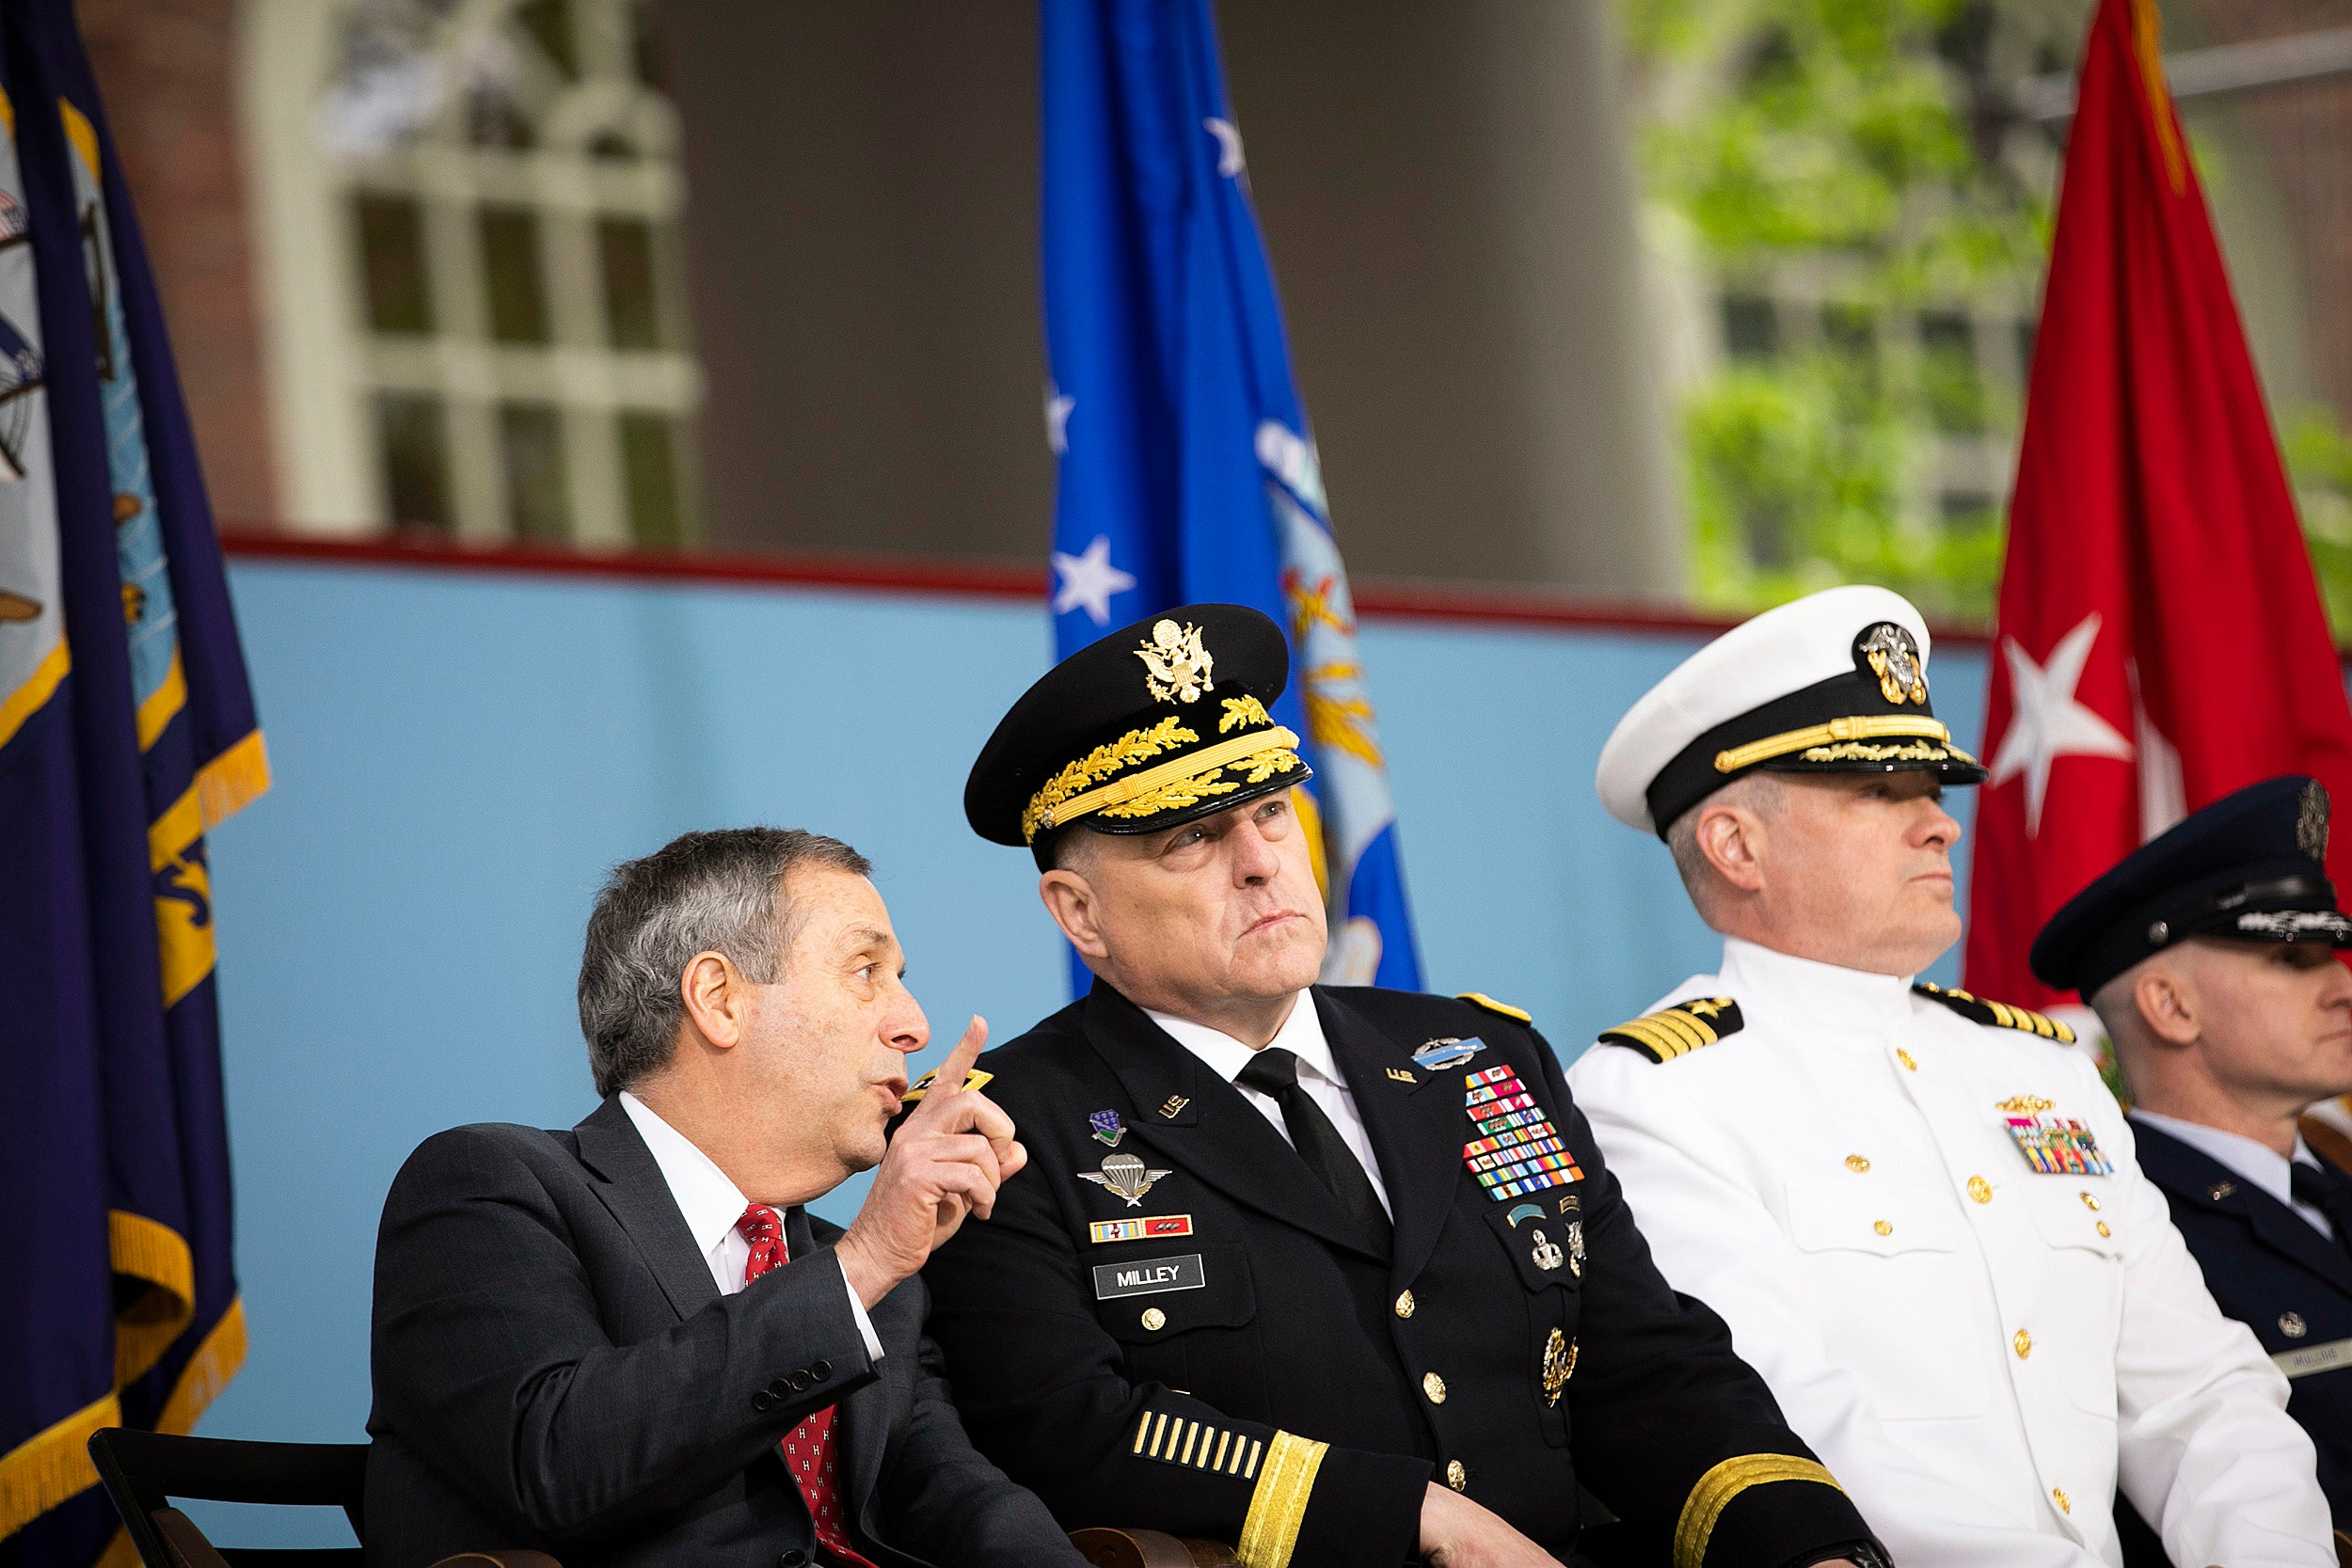 Harvard President Larry Bacow (left) speaks with General Mark A. Milley during there event.